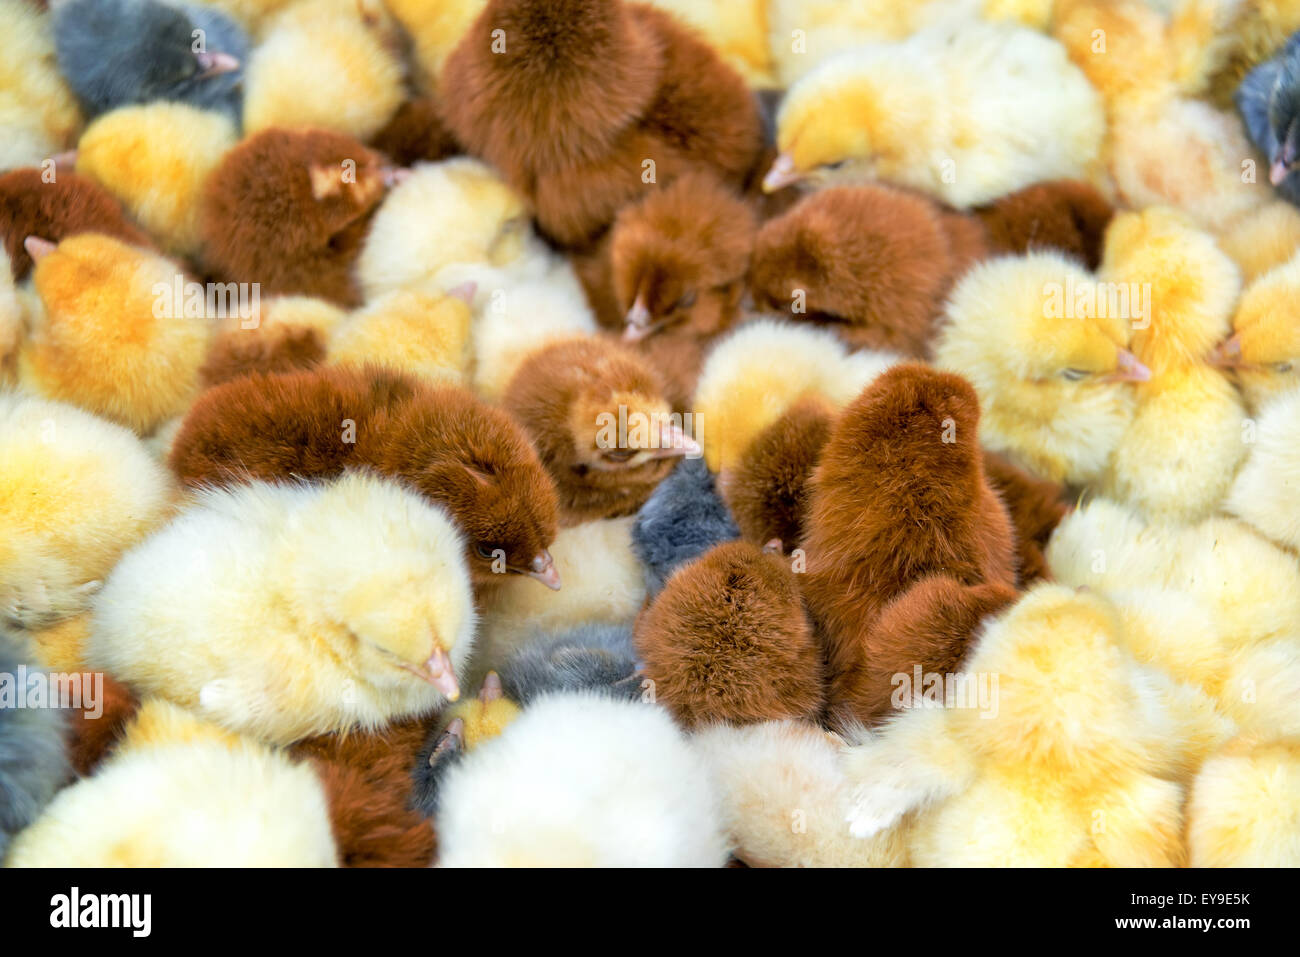 Closeup view of yellow, brown, and grey chicks in the animal market of Otavalo, Ecuador - Stock Image